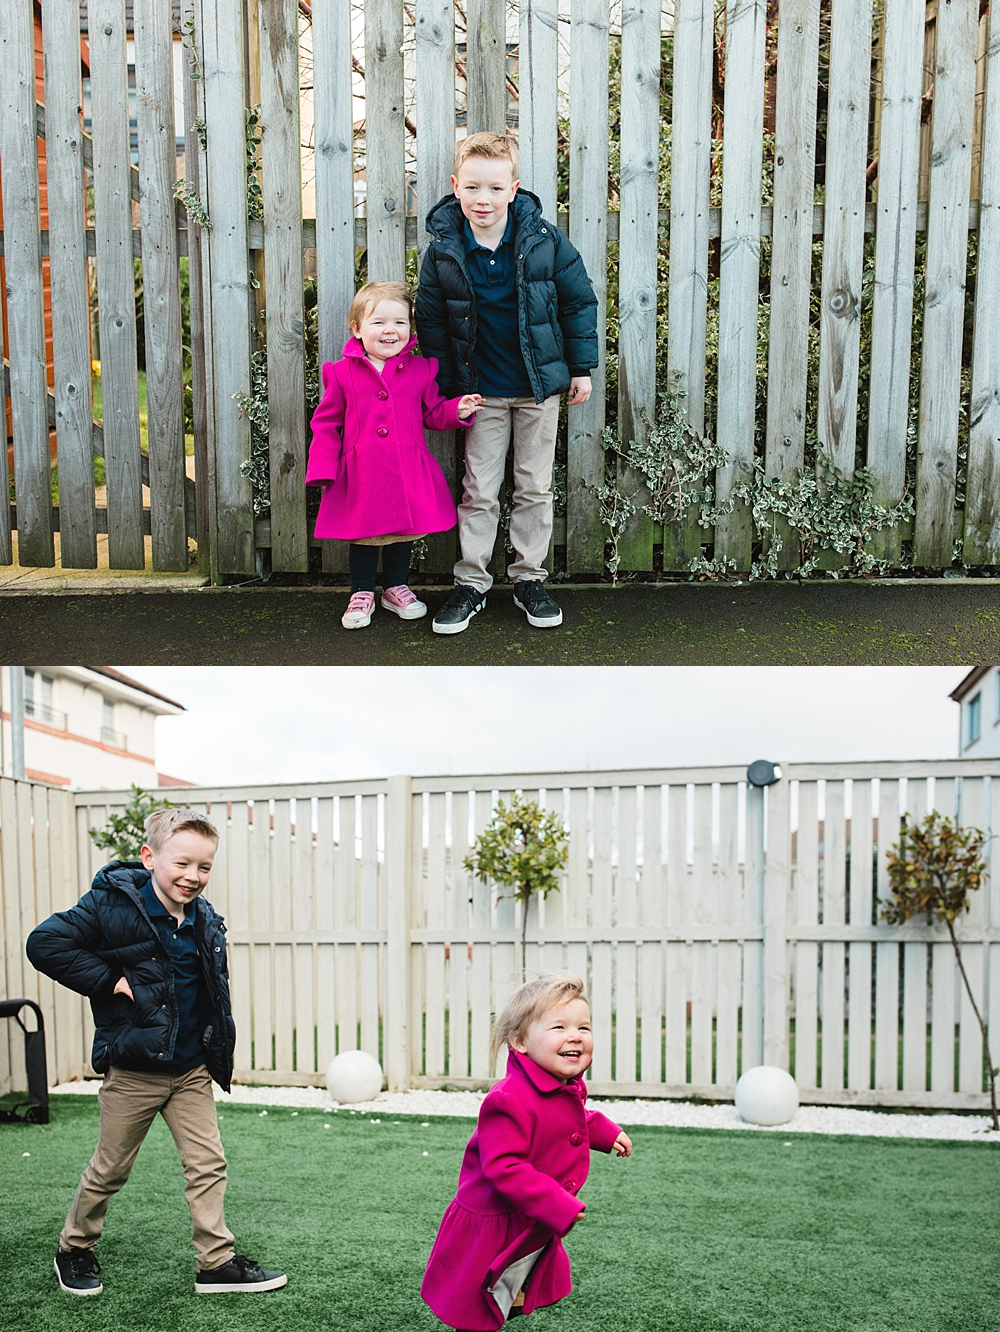 family photographer glasgow,glasgow family photographers,lifestyle childrens photographers glasgow,lifestyle family photography glasgow,lifestyle family shoot glasgow,